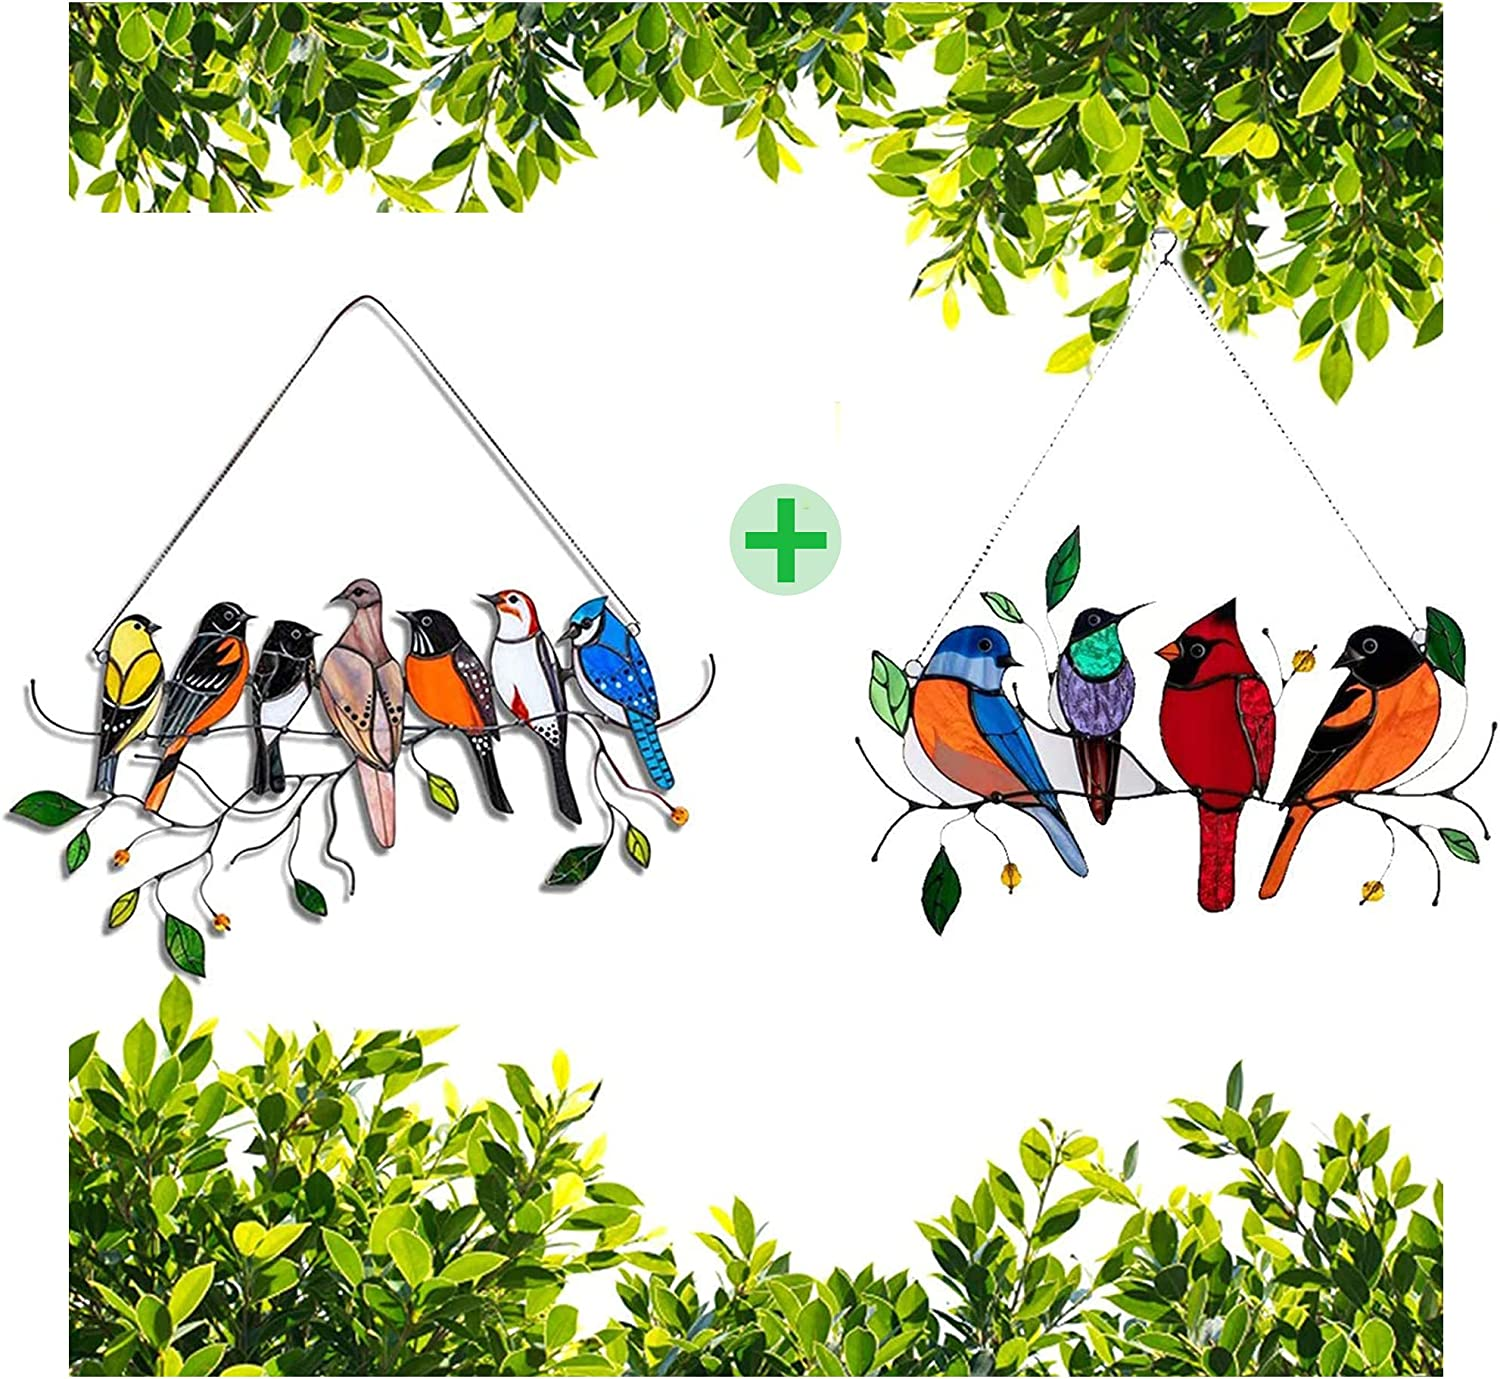 Multicolor Birds on a Wire High Stained Plexiglass Suncatcher Window Panel,Bird Series Ornaments Pendant Home Decoration,Hanging for Windows Doors Home Decoration and Gifts (4 Birds+7 Birds)